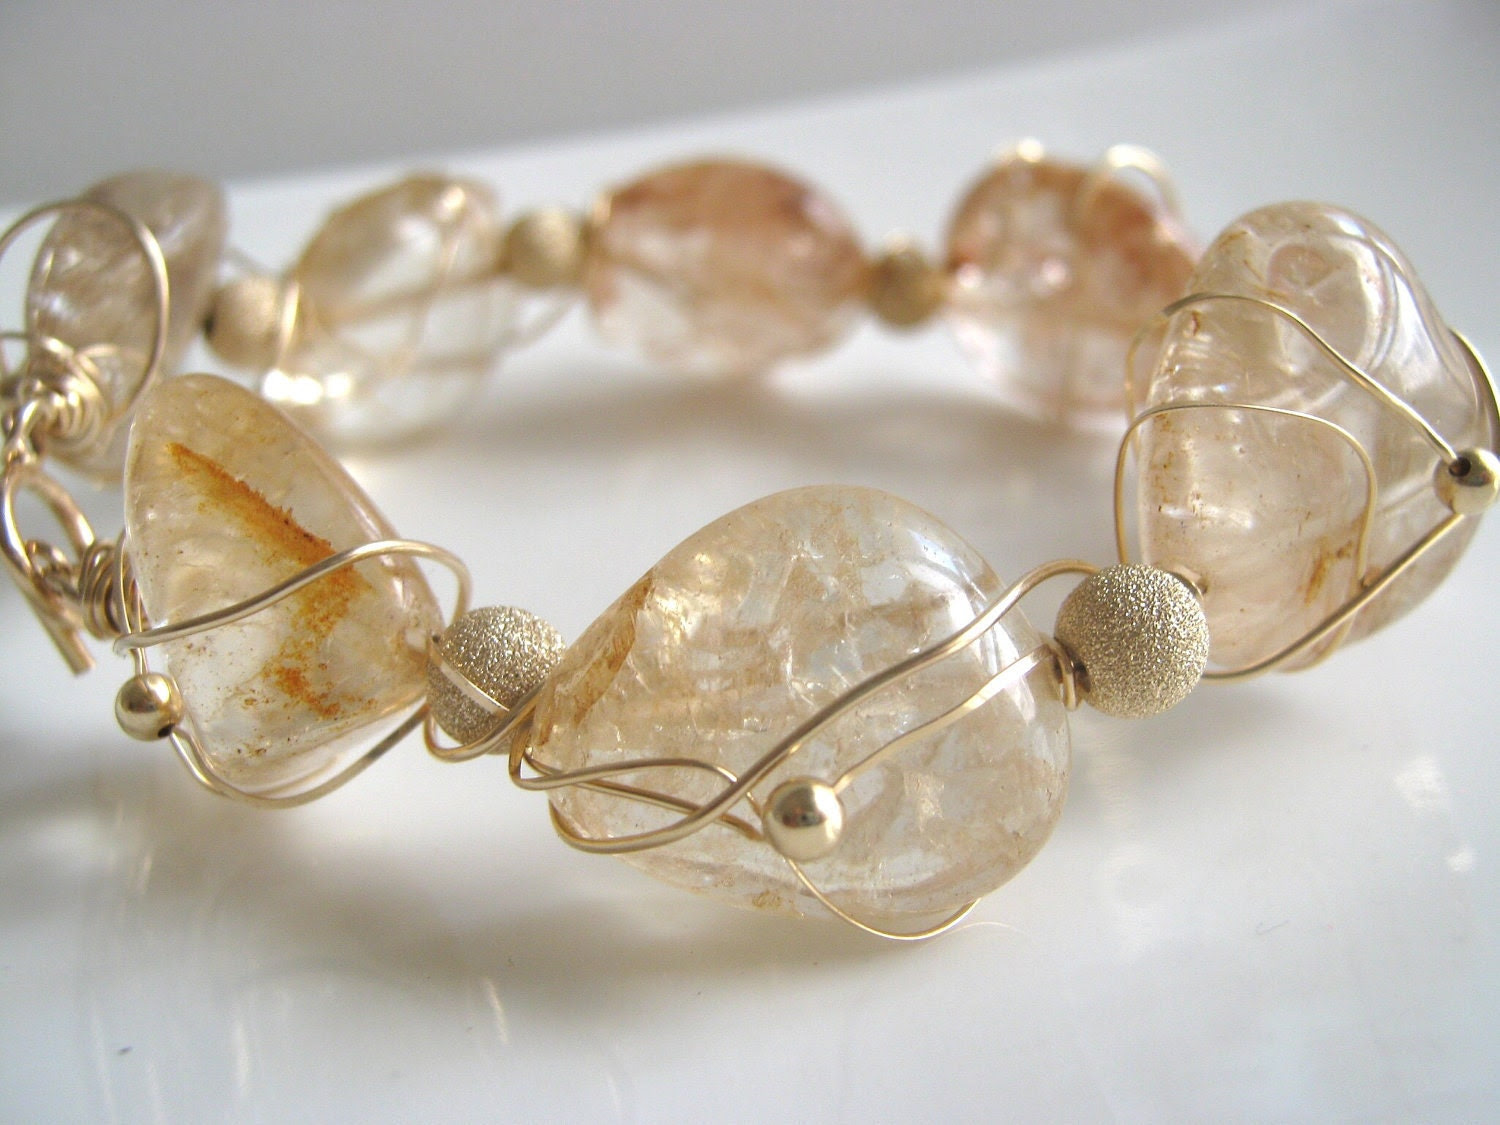 Gold Filled Bracelet - Gold Inflections - magnificent ice flake quartz bracelet in gold filled - free shipping worldwide